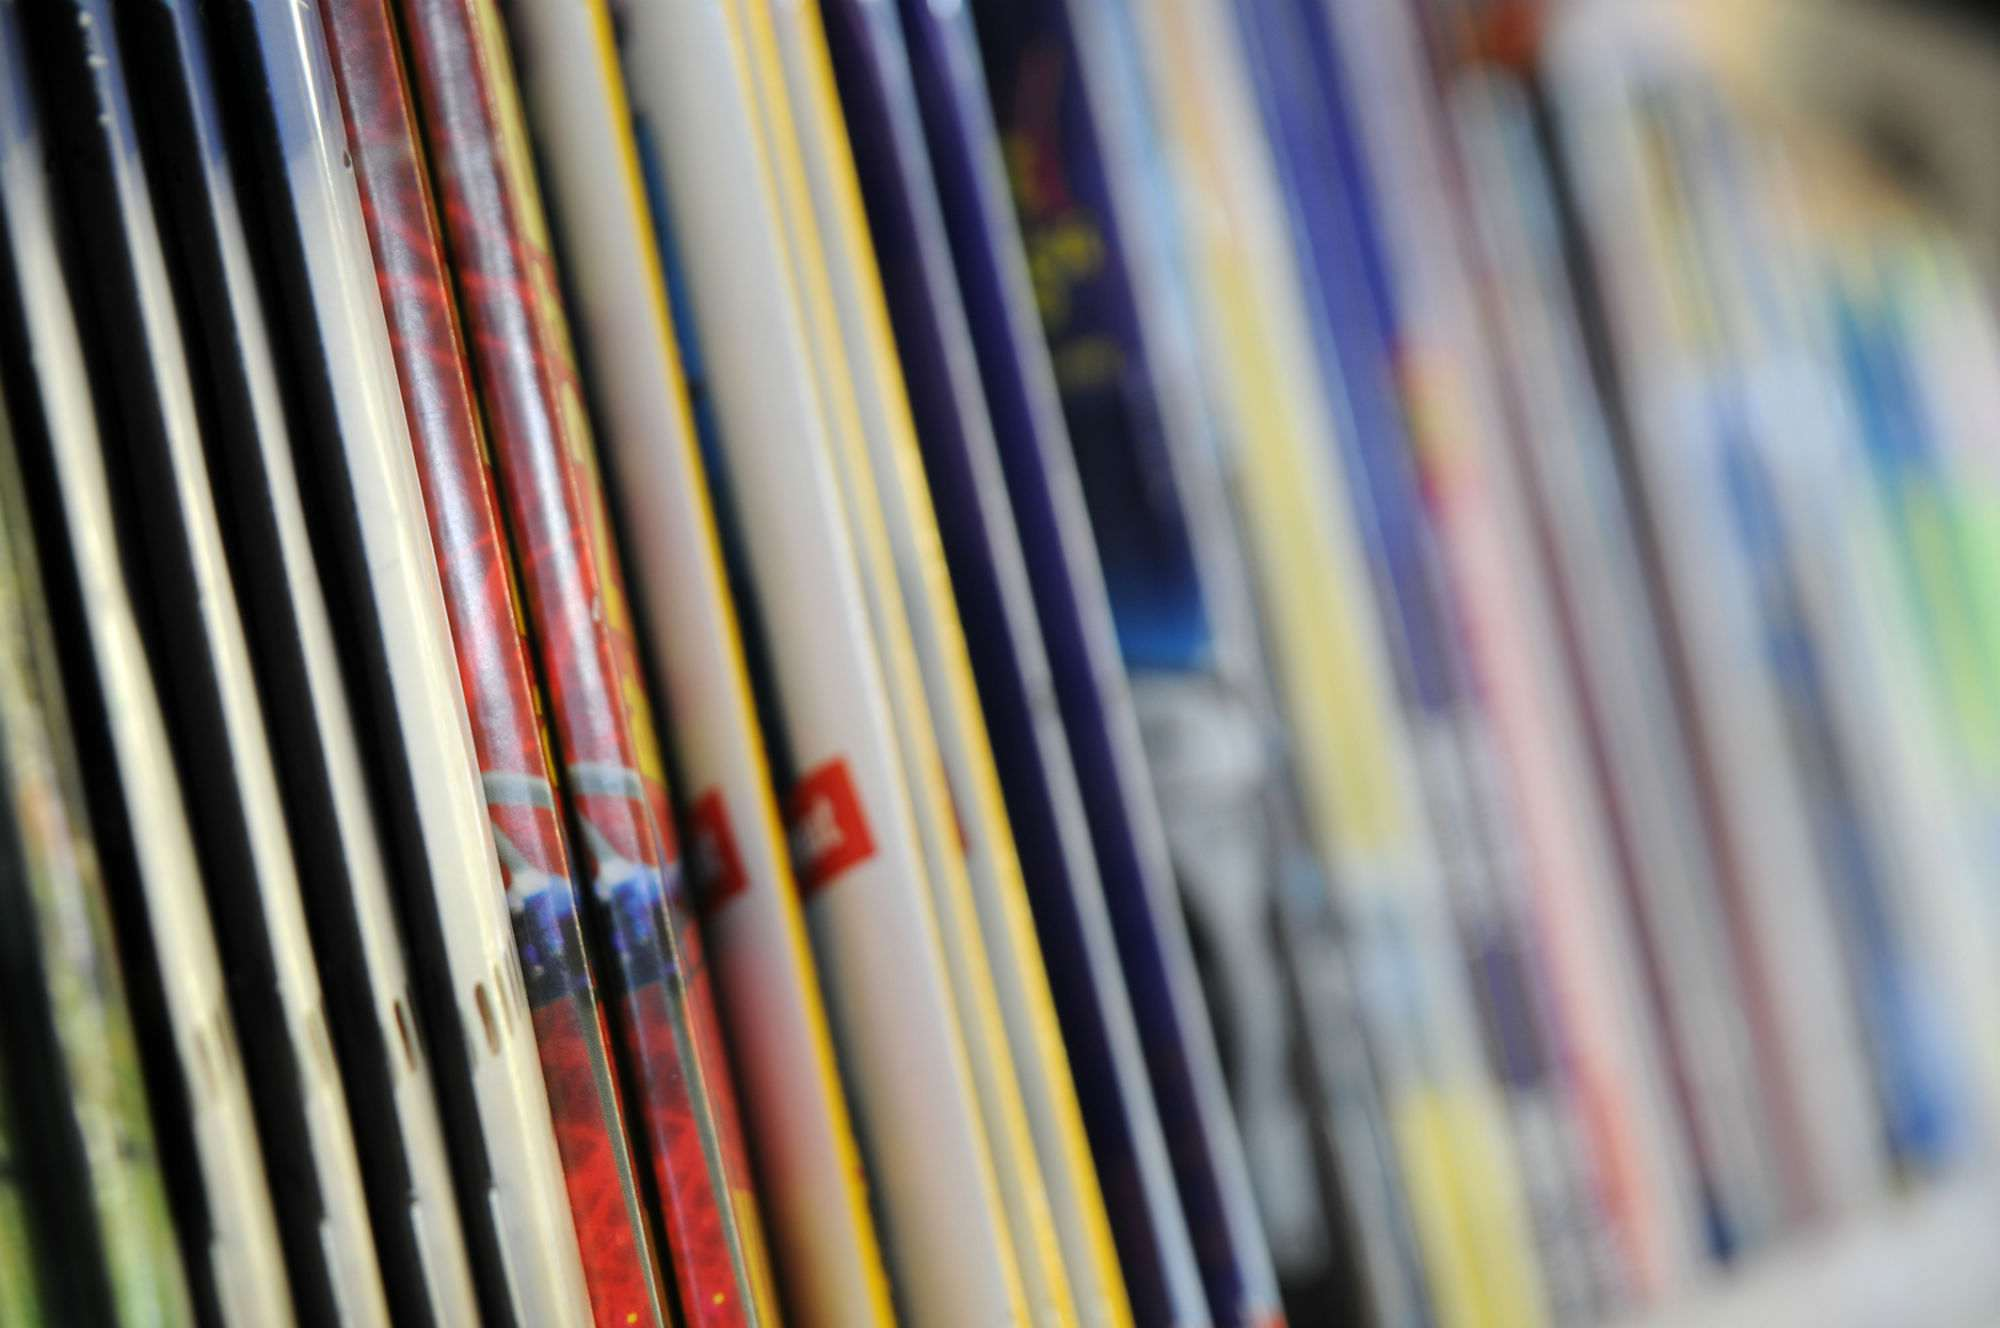 A row of thin, staple-bound magazines in a kiosk